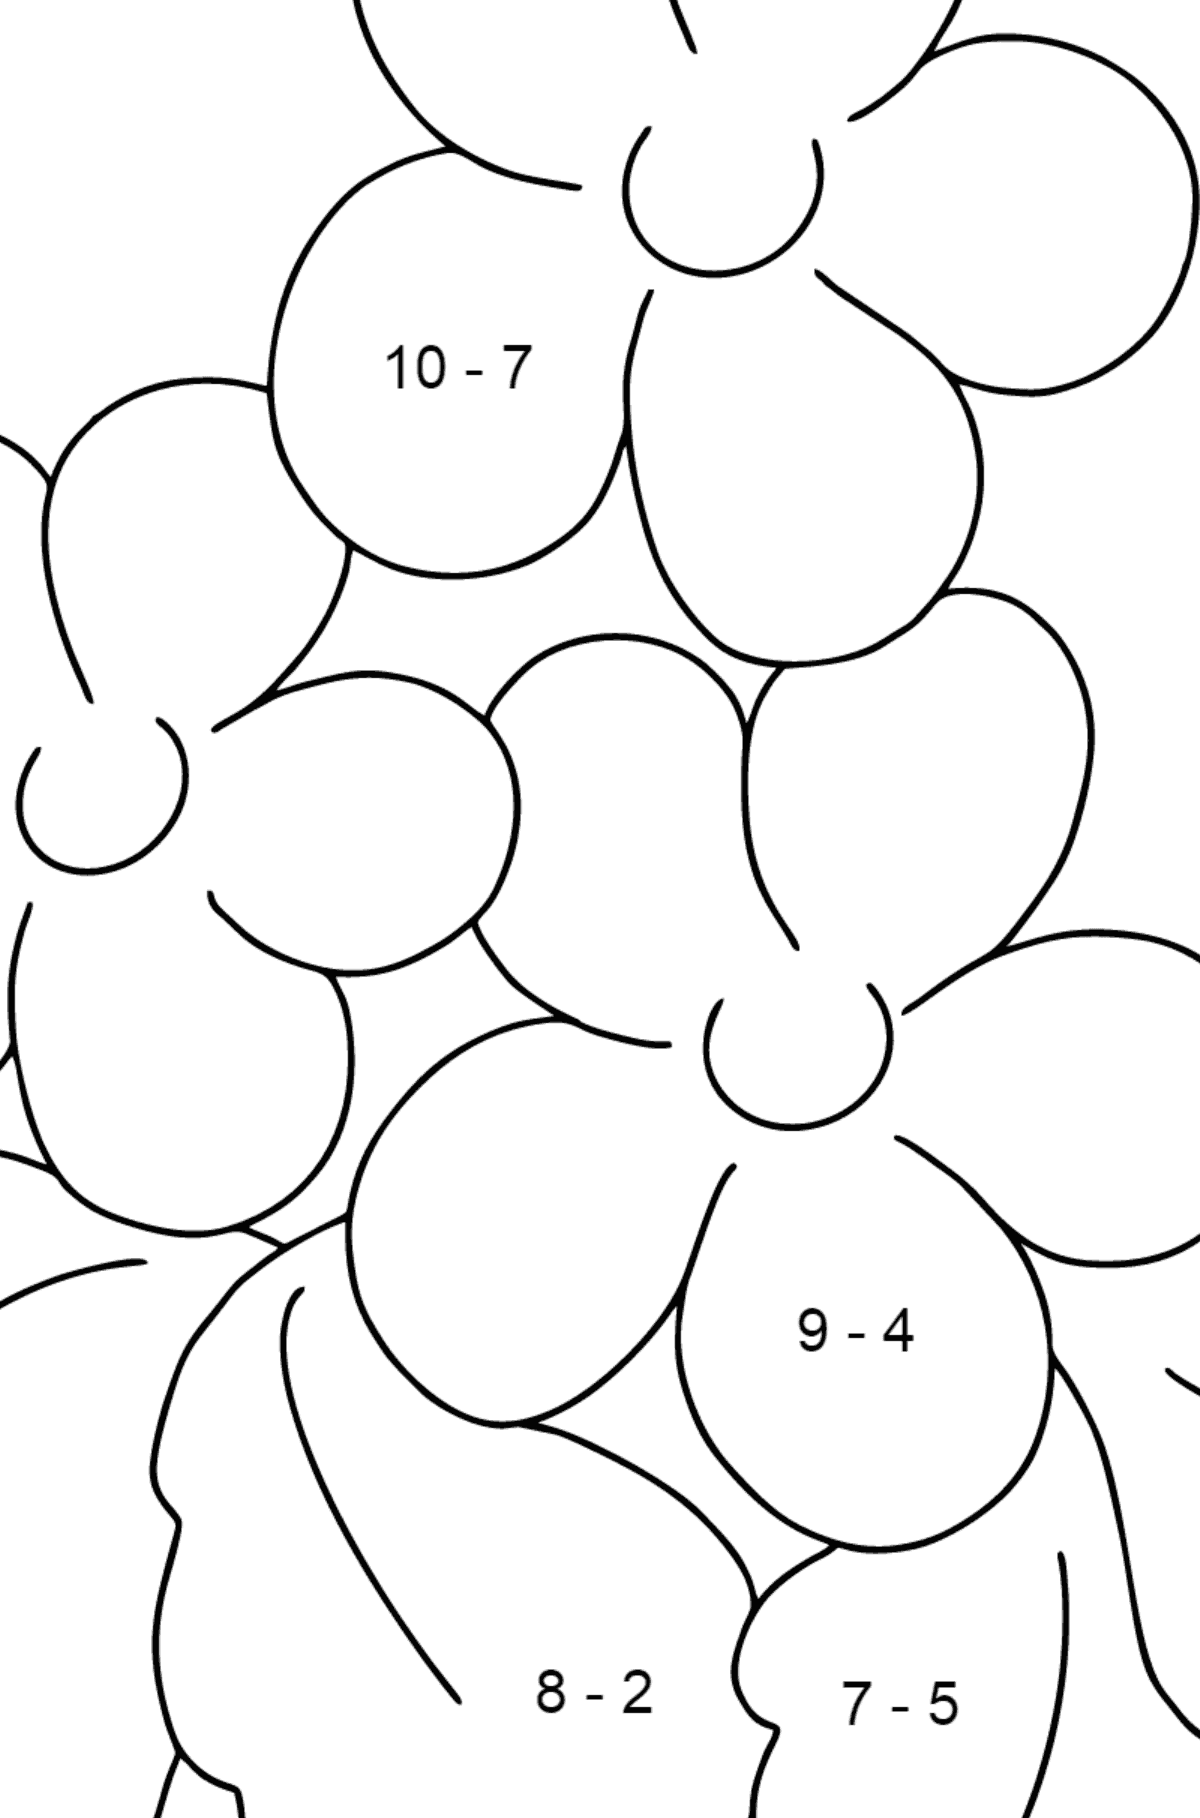 Coloring Page - Spring and Flowers - Math Coloring - Subtraction for Kids